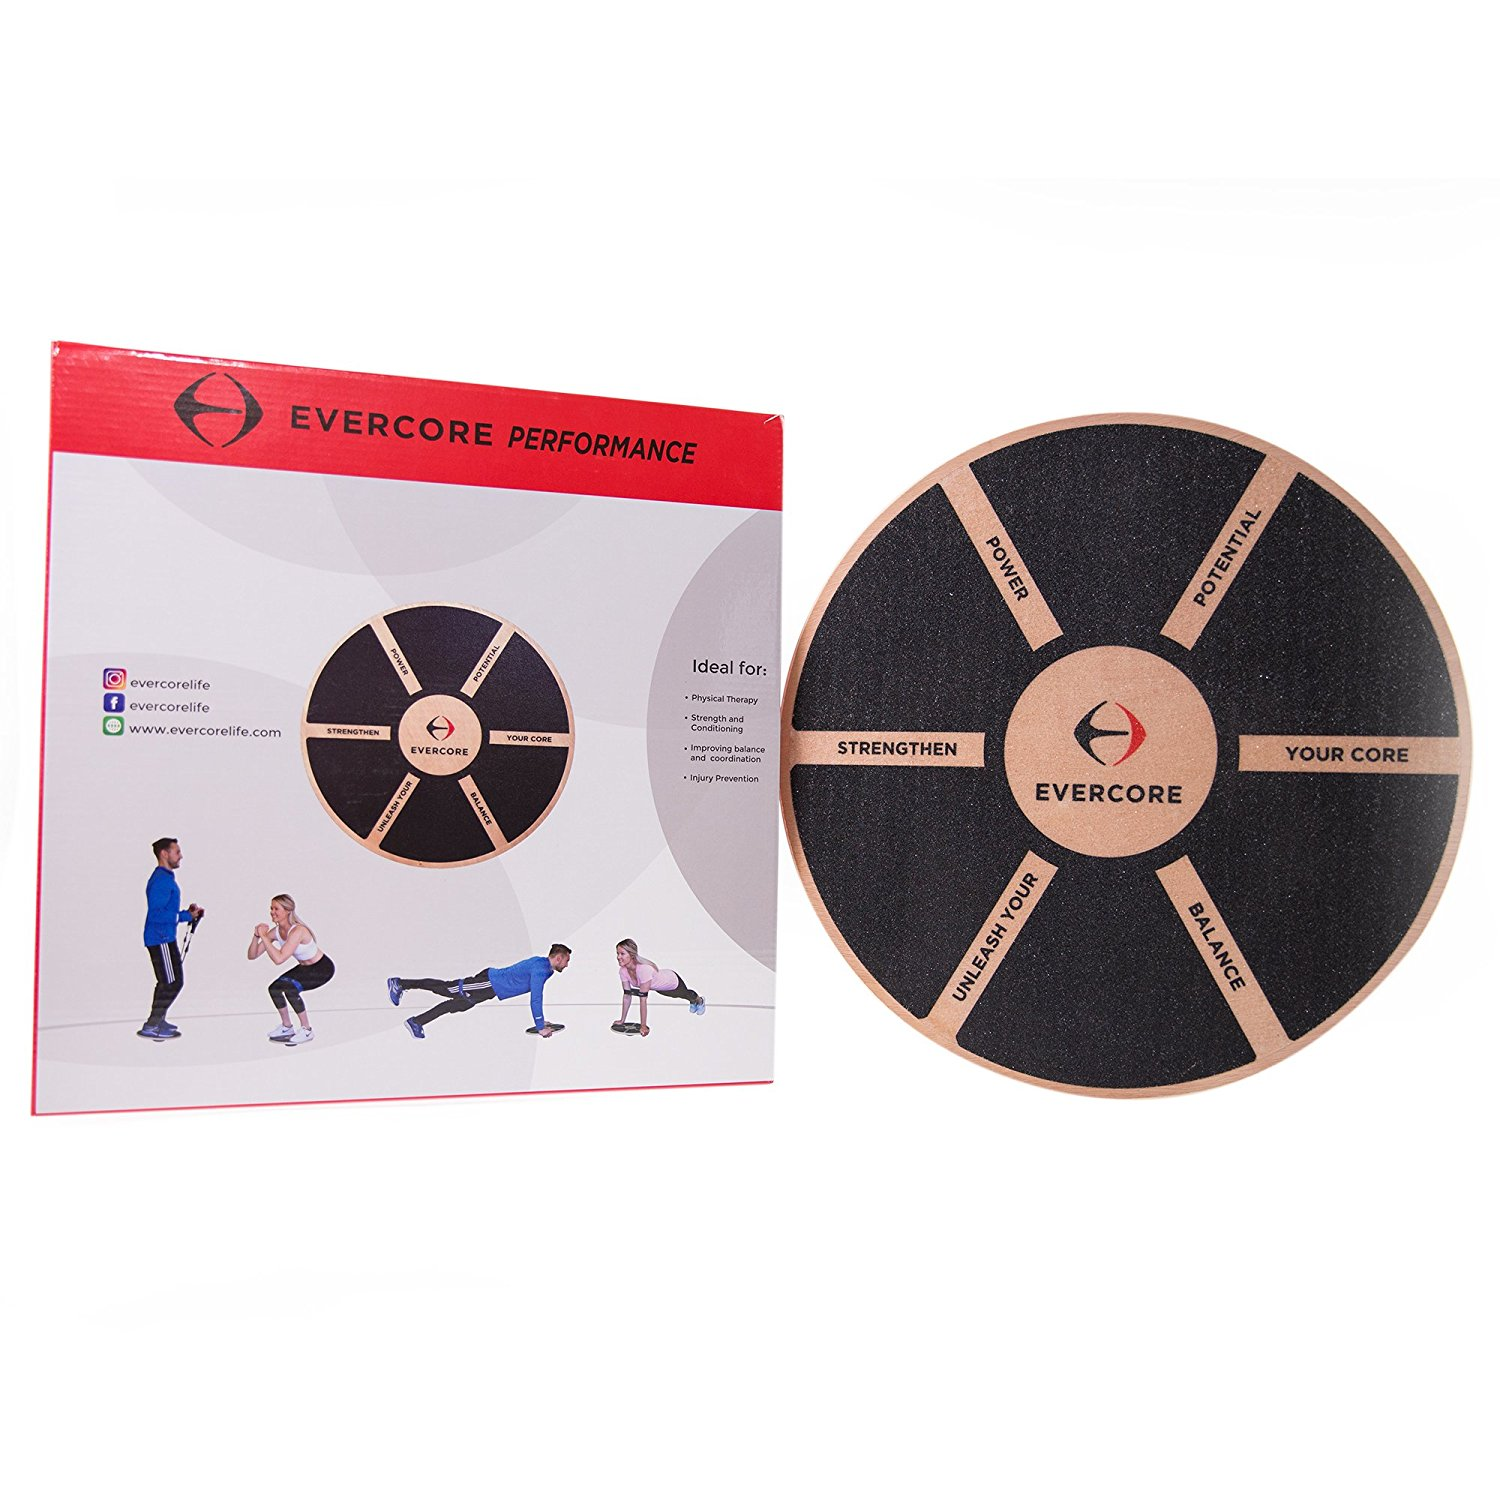 EVERCORE-Balance-Board-Increase-Core-Strength-ACL-Rehab-Physical-Therapy-Prevent-Ankle-Sprains-Balance-Training-So-B0718X6HQ4